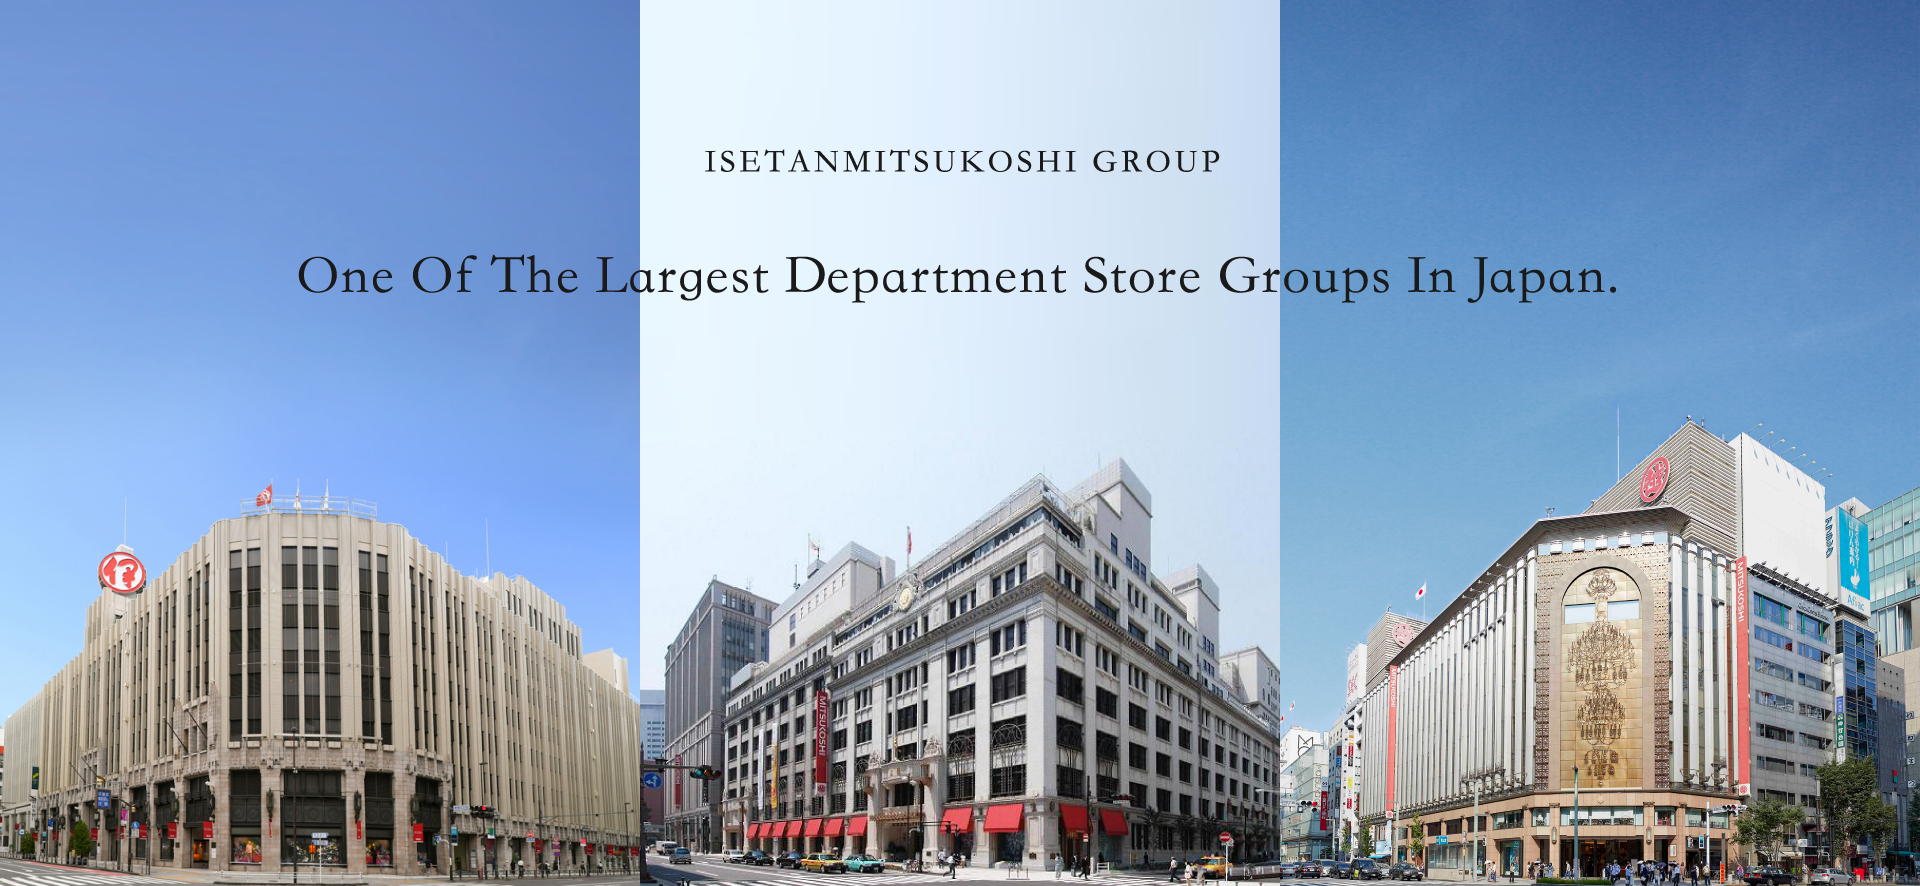 One of the largest department store groups in Japan.